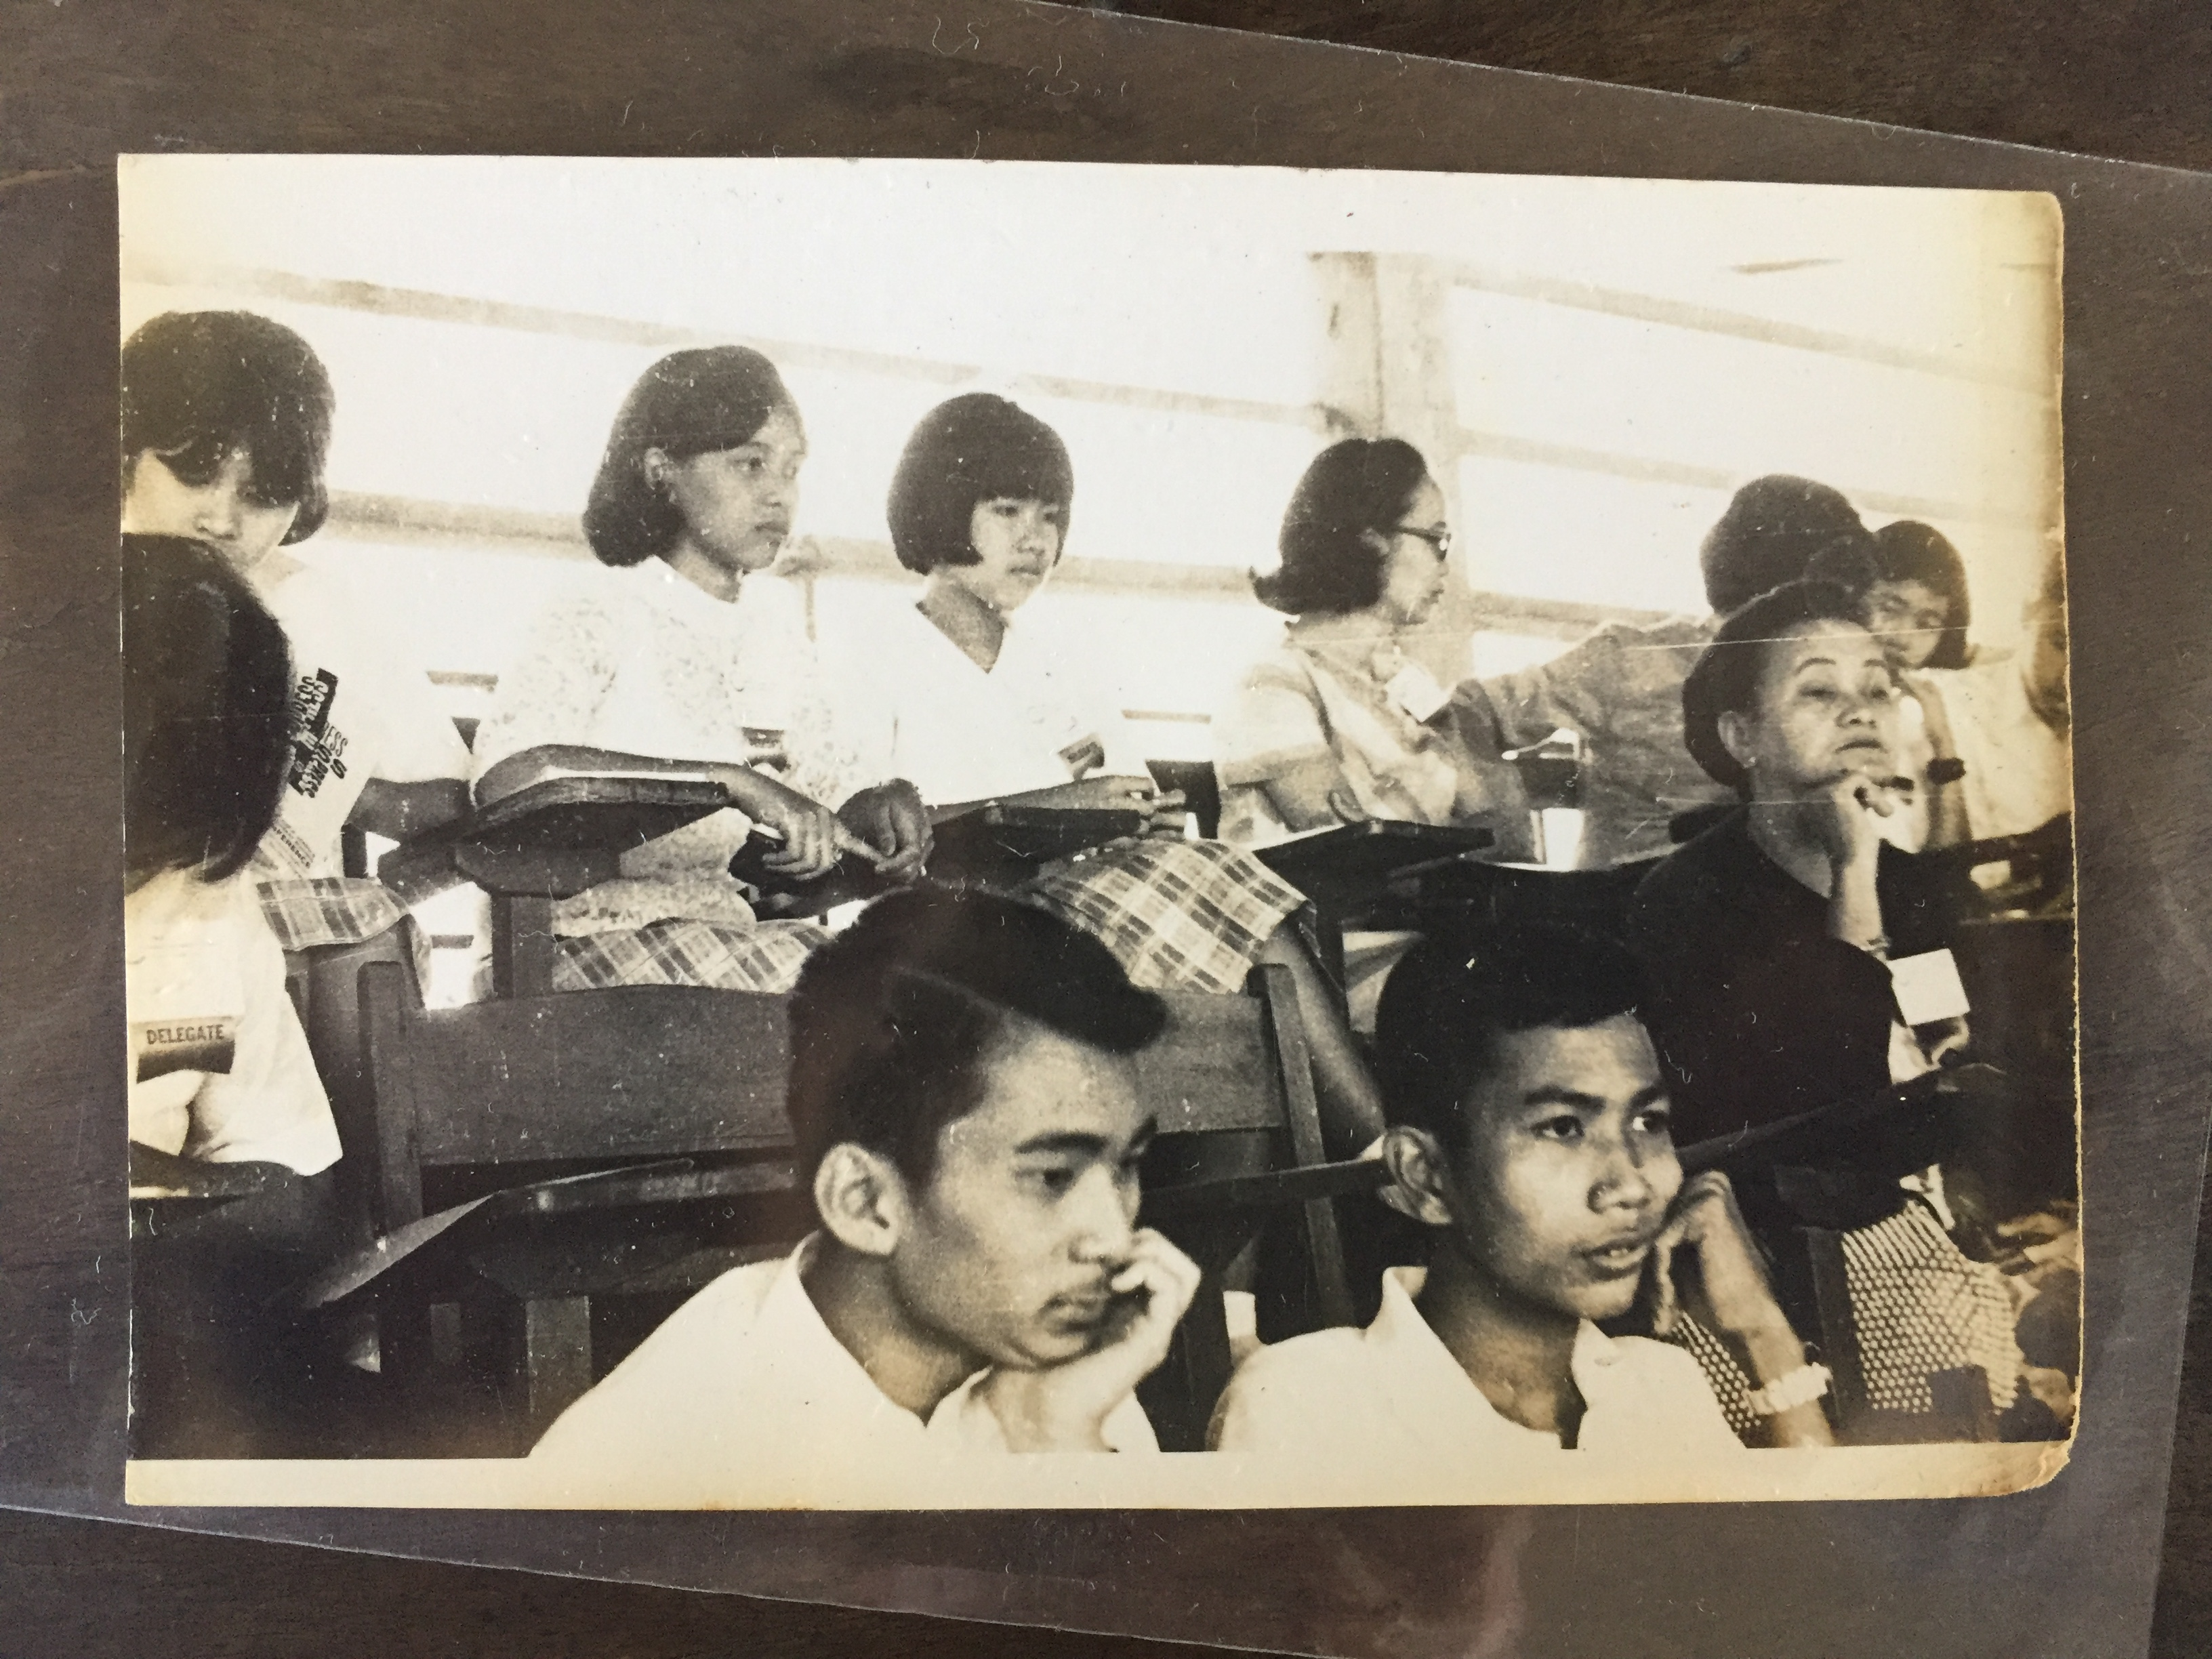 OLD TIMES. A scene taken in one of the lectures during the 1968 National Secondary Schools Press Conference in Lucena, Quezon. Photo from the collection of Florentina Franco